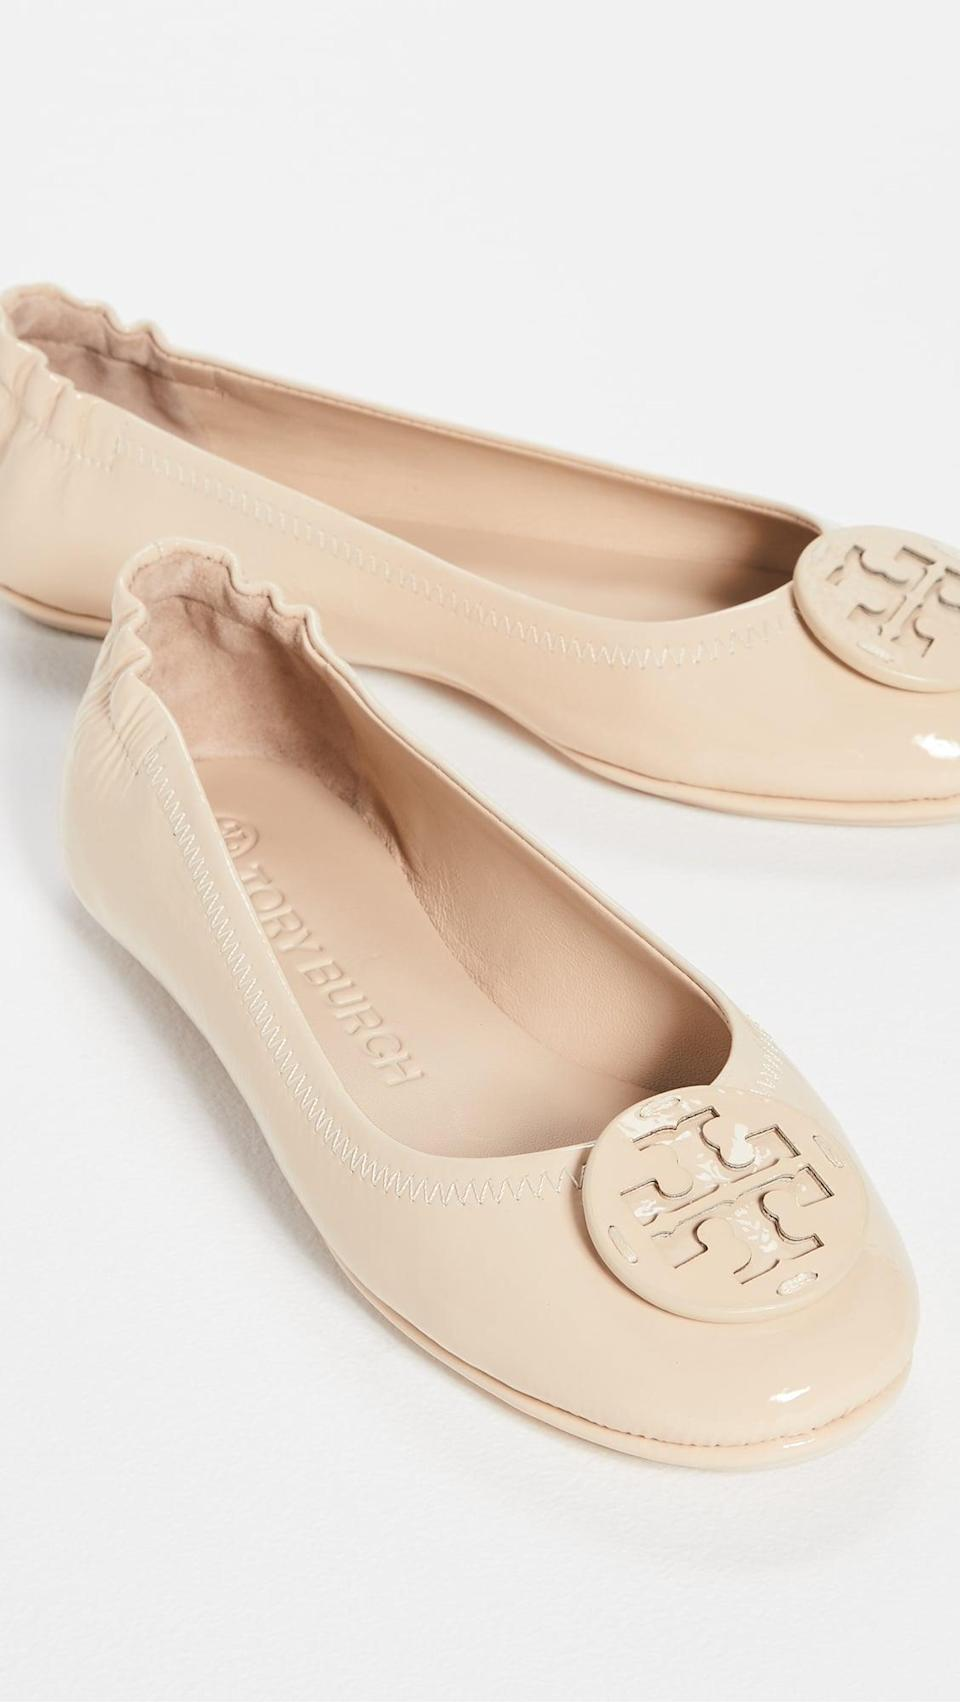 <p>These bestselling <span>Tory Burch Minnie Travel Ballet Flats</span> ($228) are always a solid choice.</p>